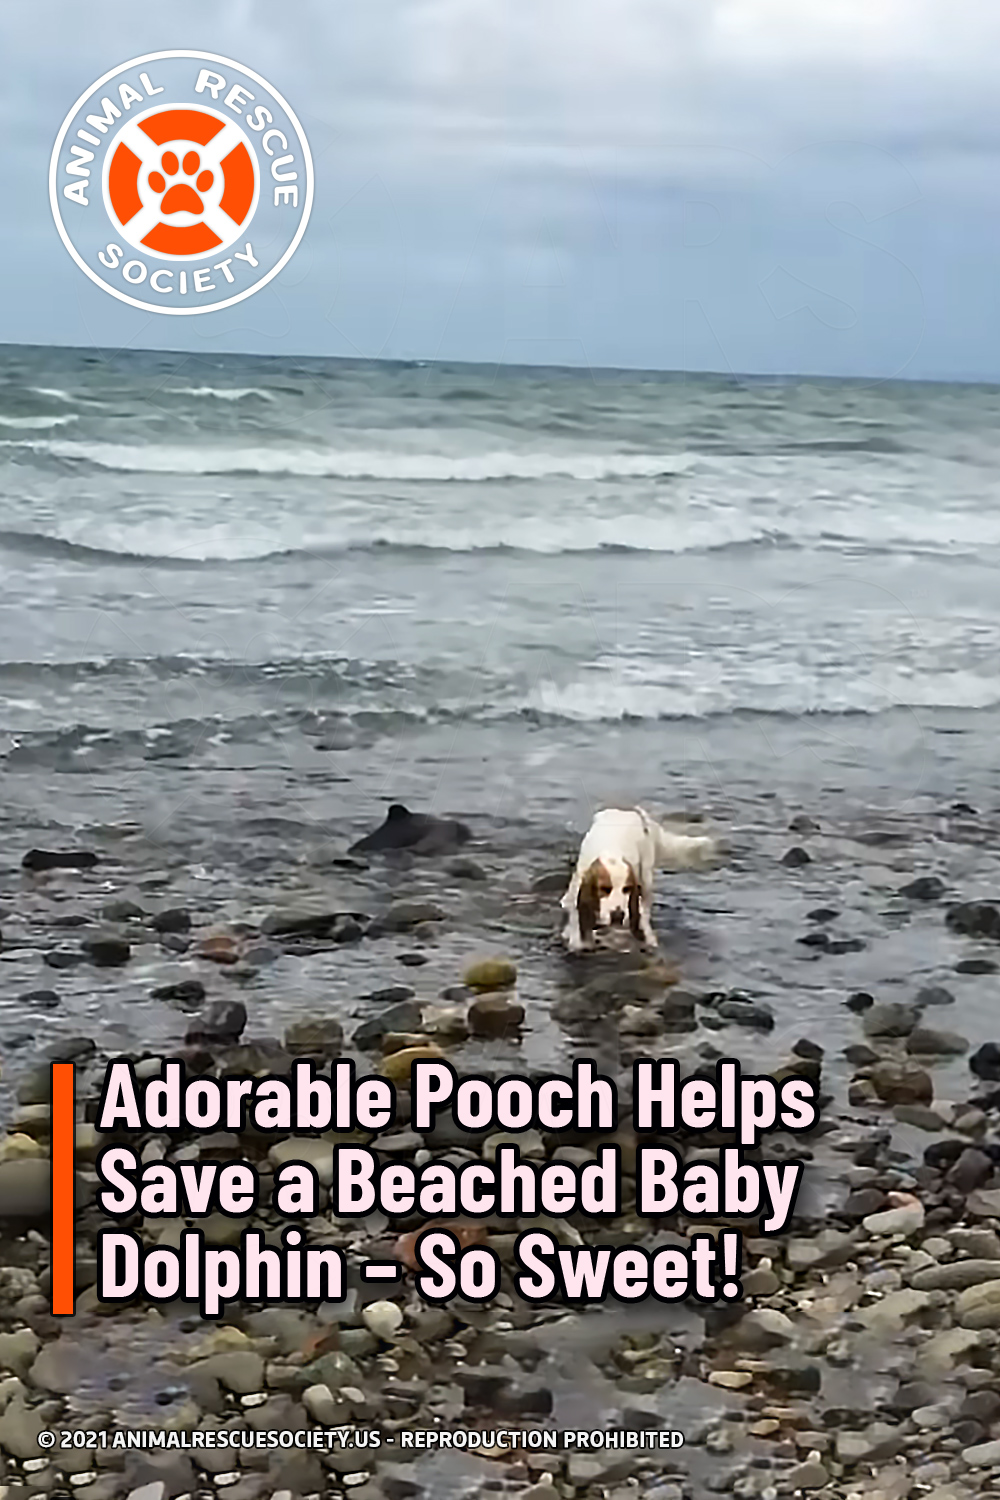 Adorable Pooch Helps Save a Beached Baby Dolphin – So Sweet!